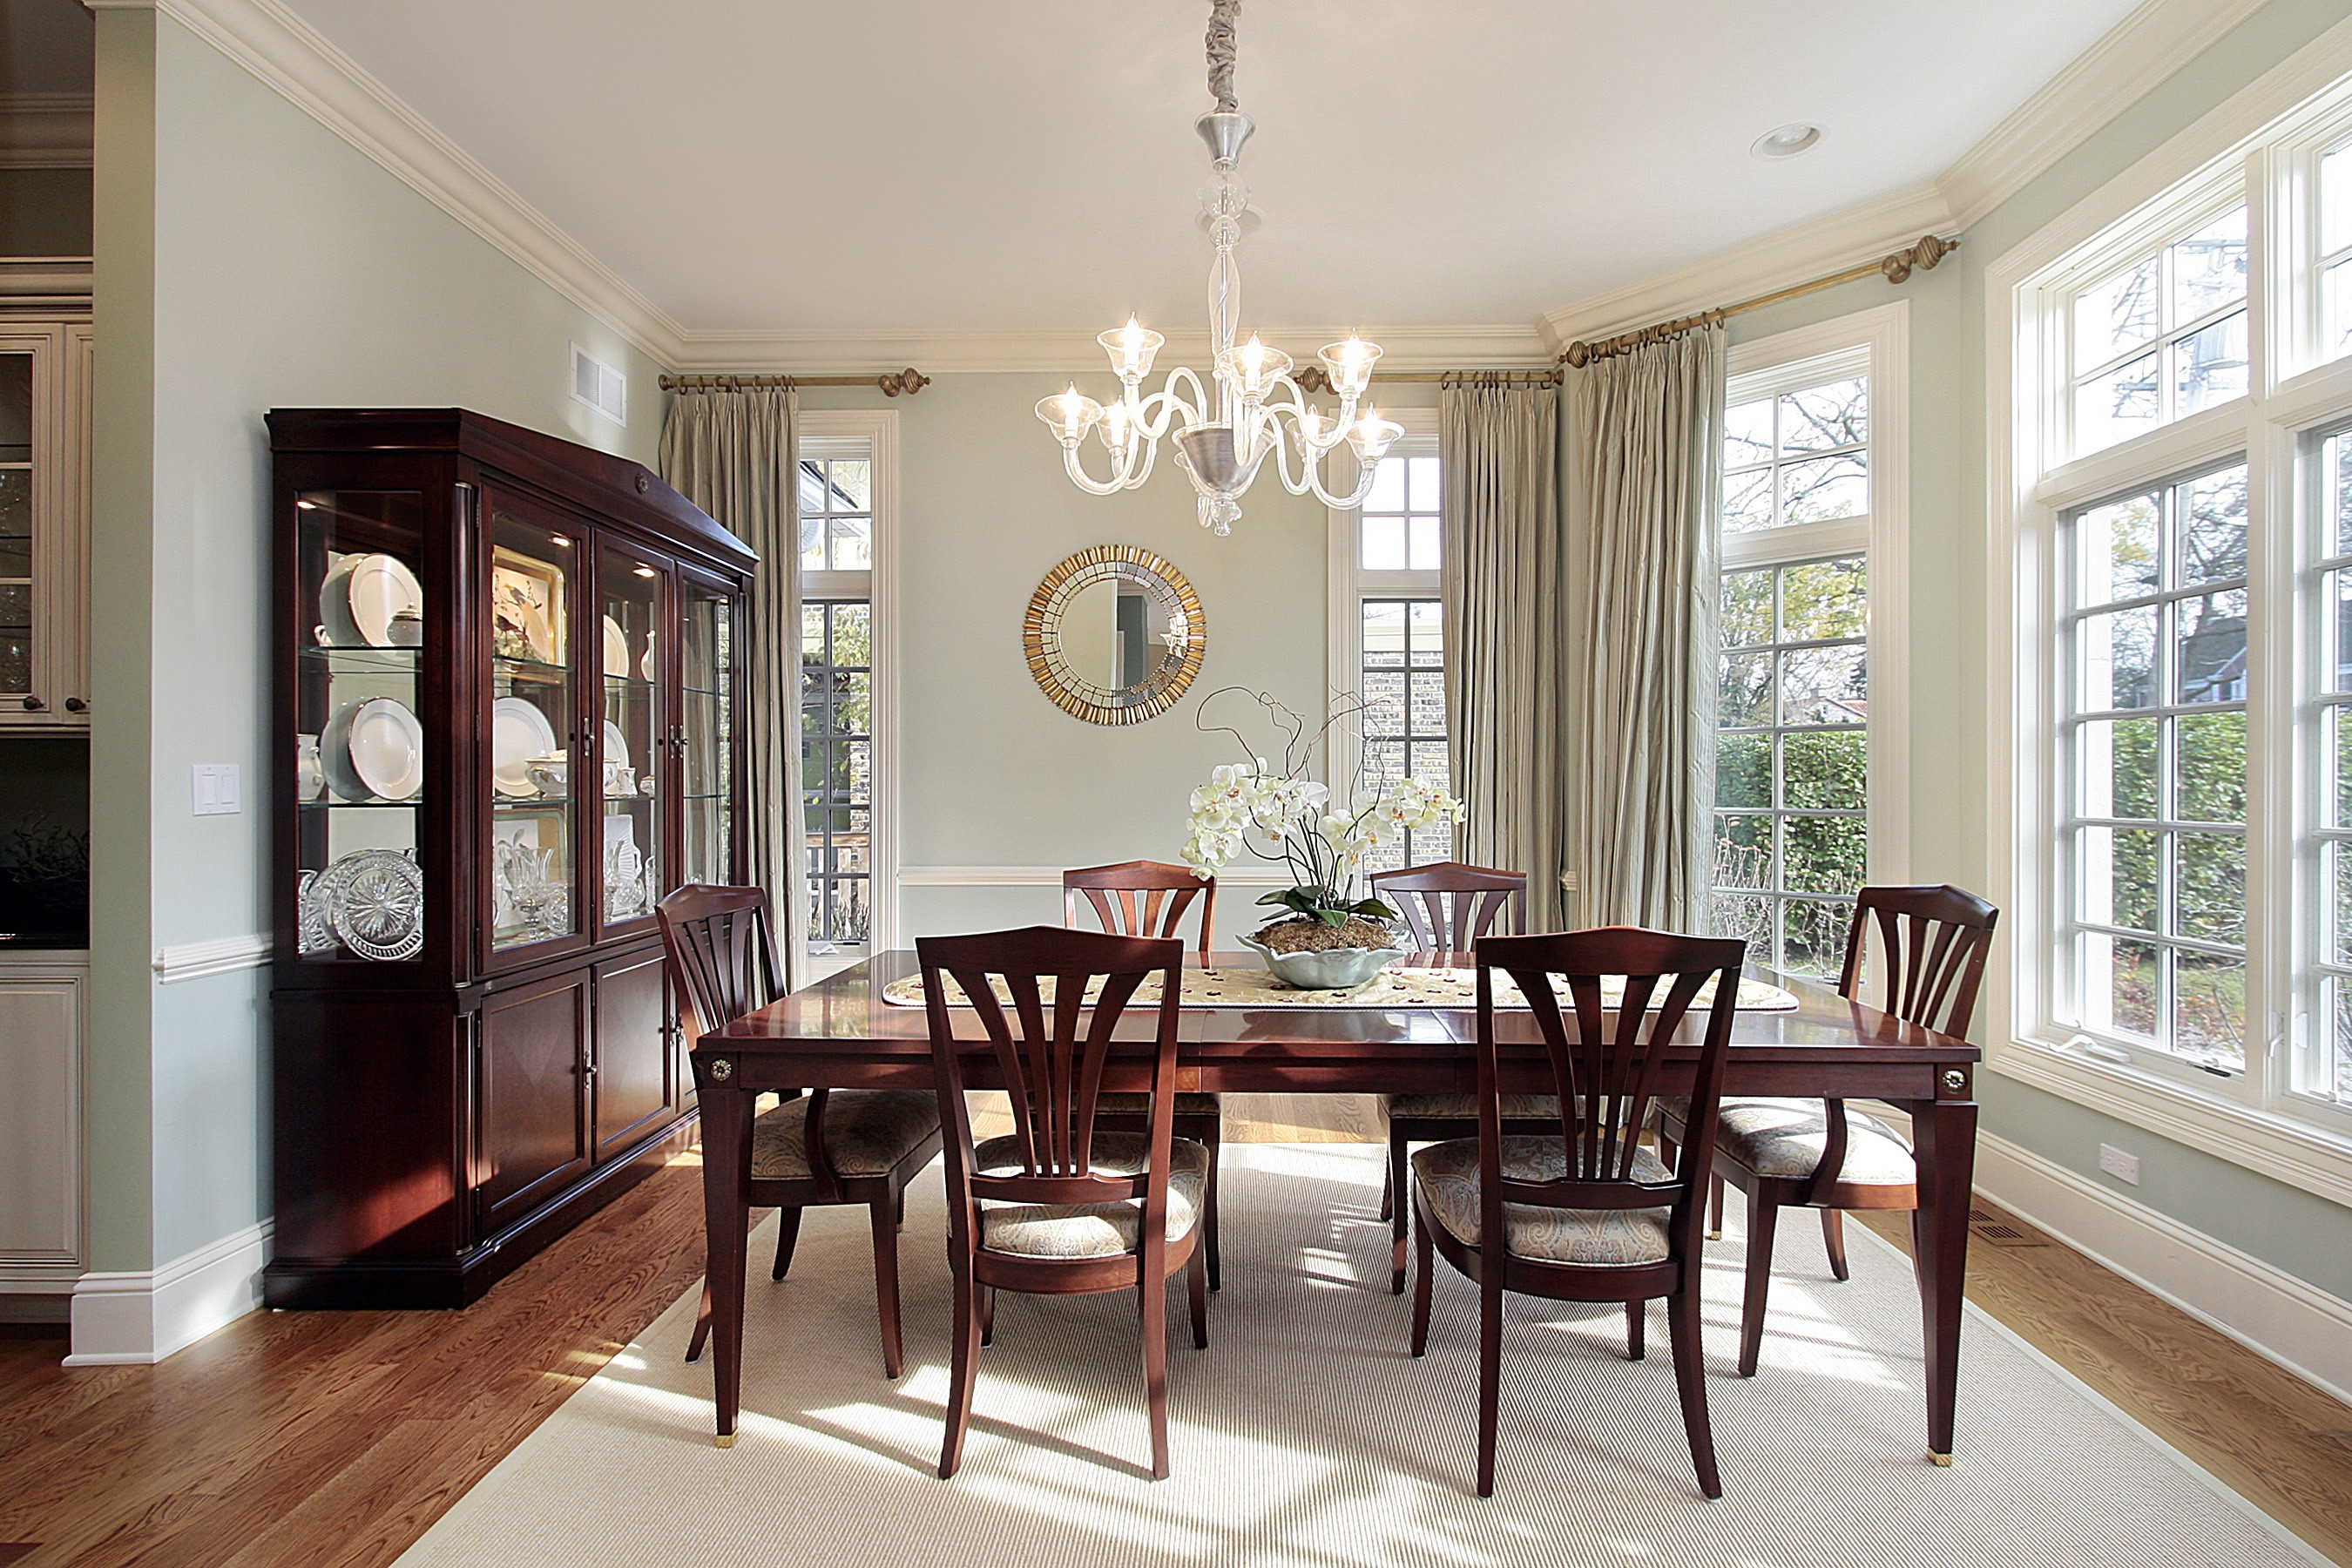 Formal Dining Rooms Are Coming Back After Years Of Casual Dining